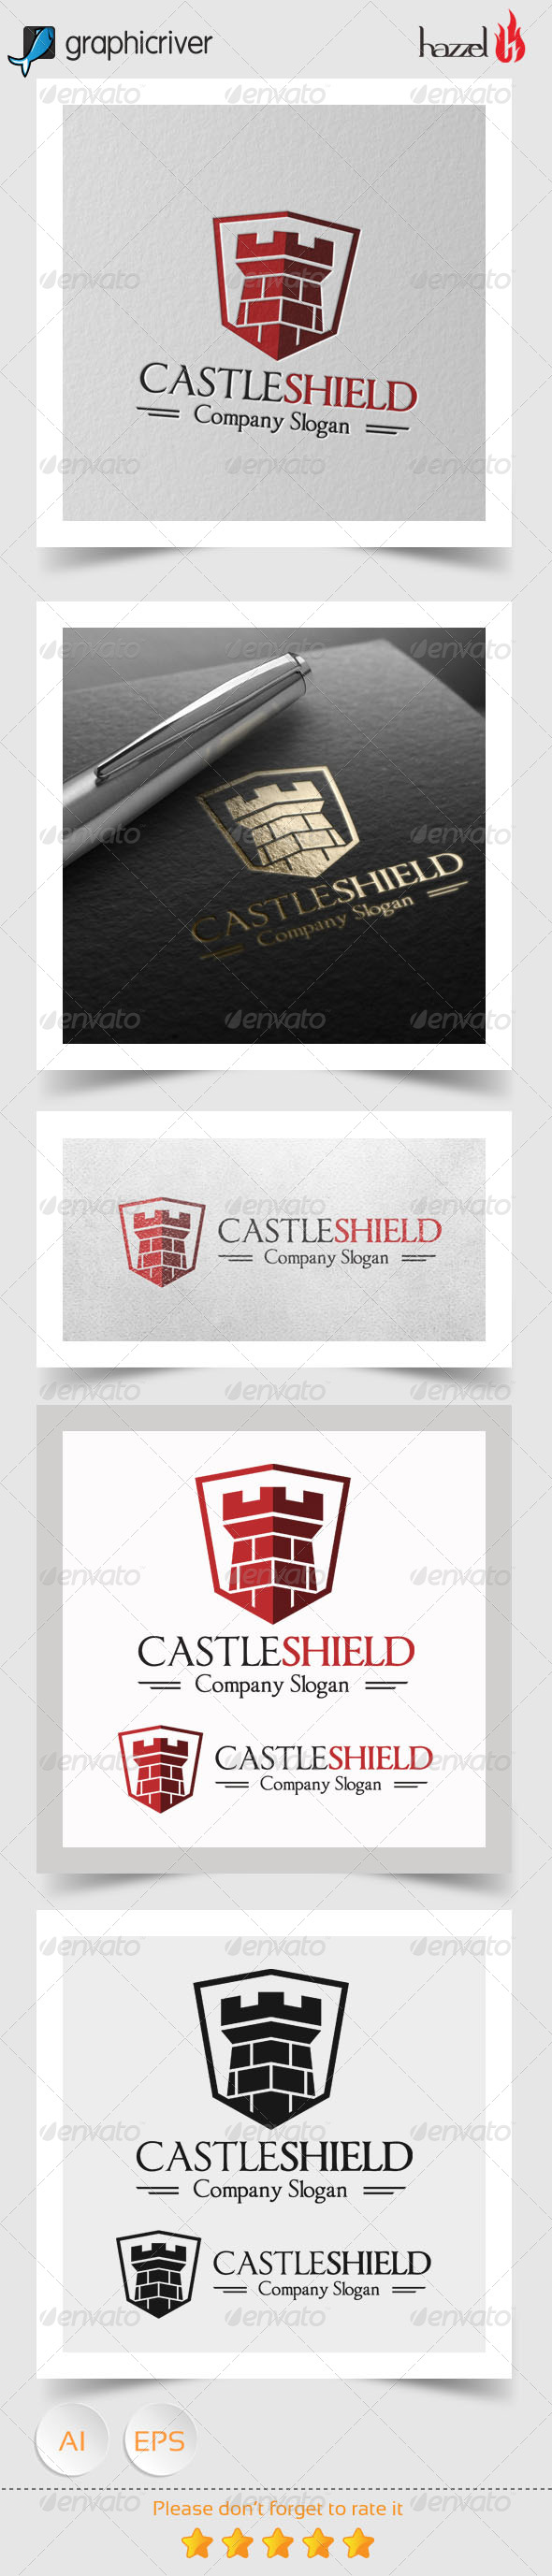 Castle Shield Logo